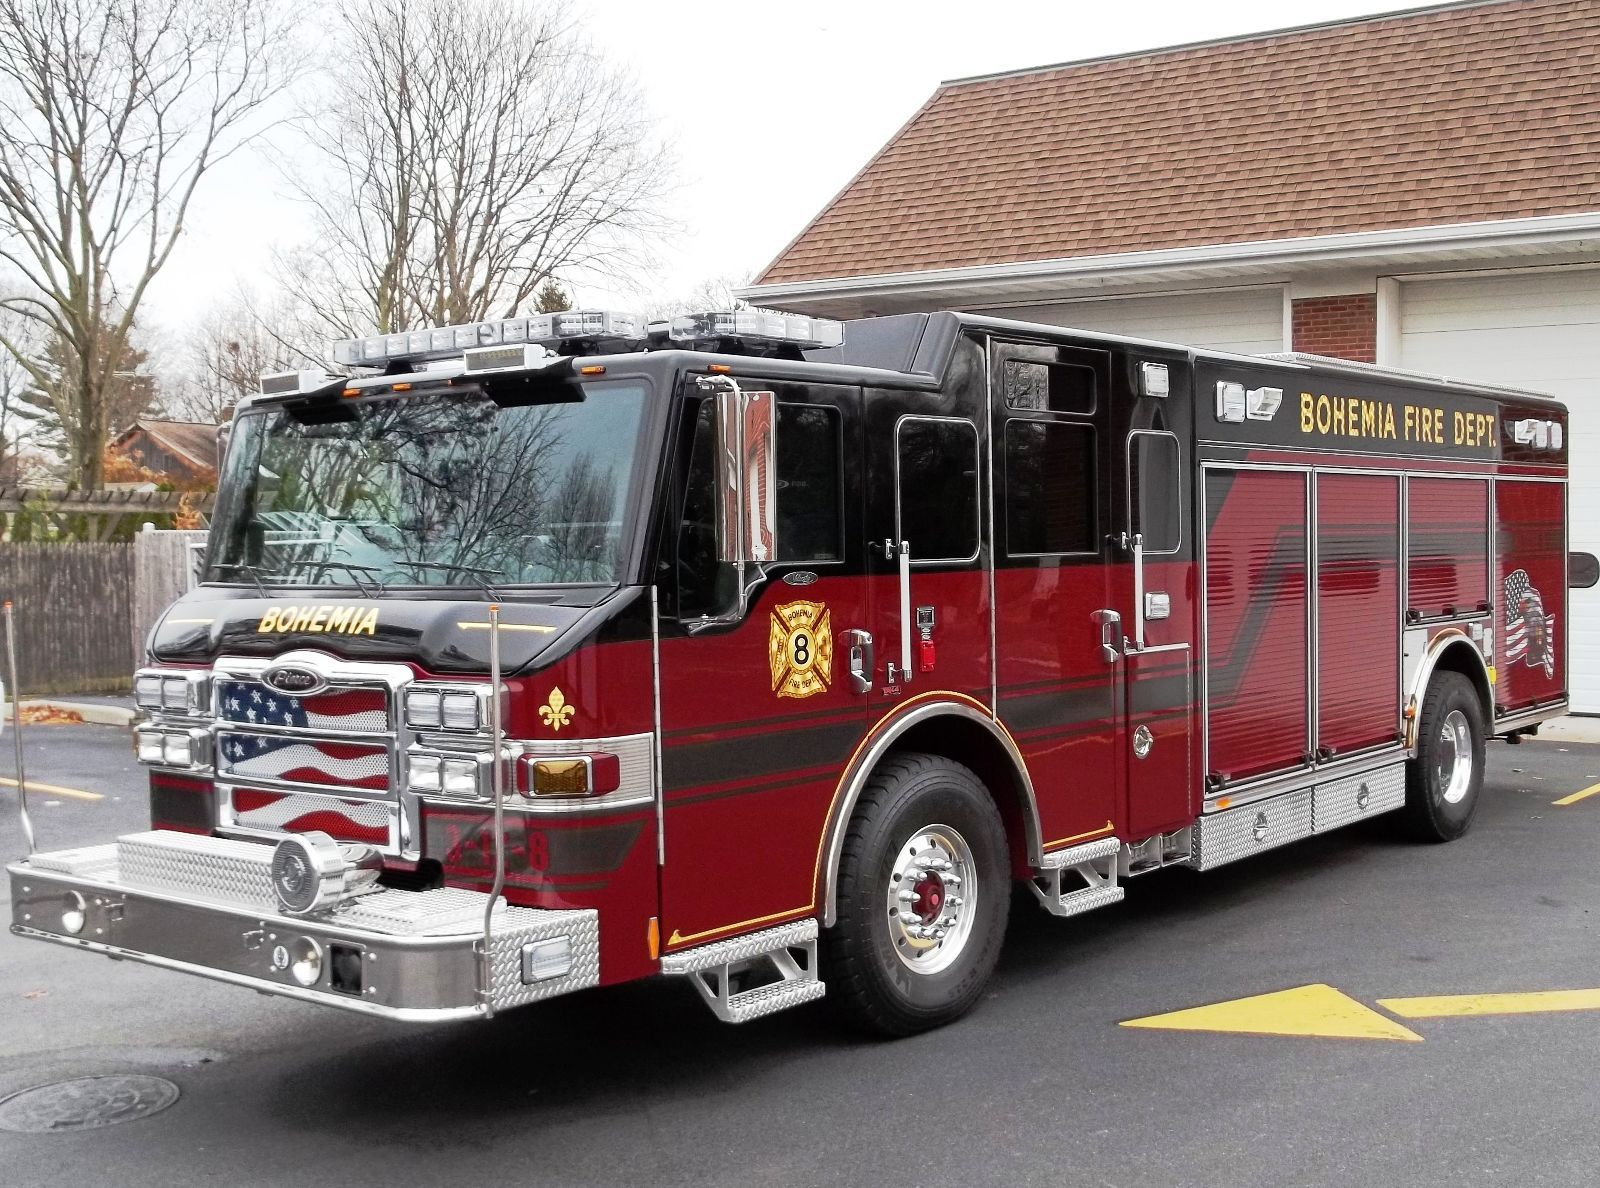 Congrats to the members of the houston fire department on the recent delivery of their new svi heavy rescue from metro fire apparatus specialist